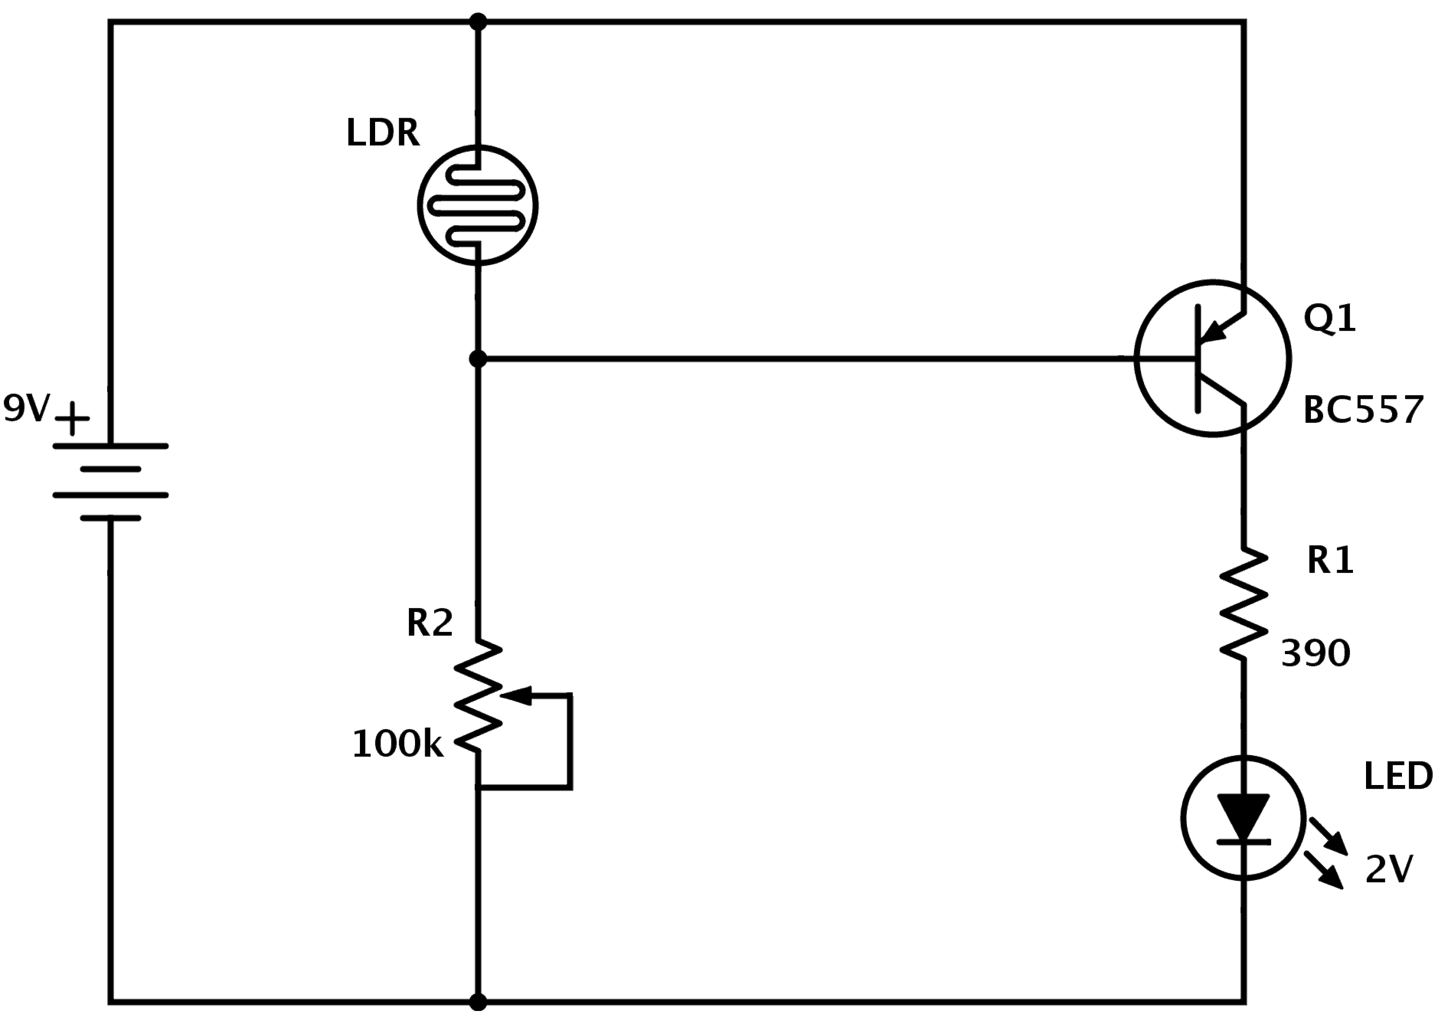 Ldr Circuit Diagram Build Electronic Circuits Example Of Series With Pnp Transistor Dark Detector